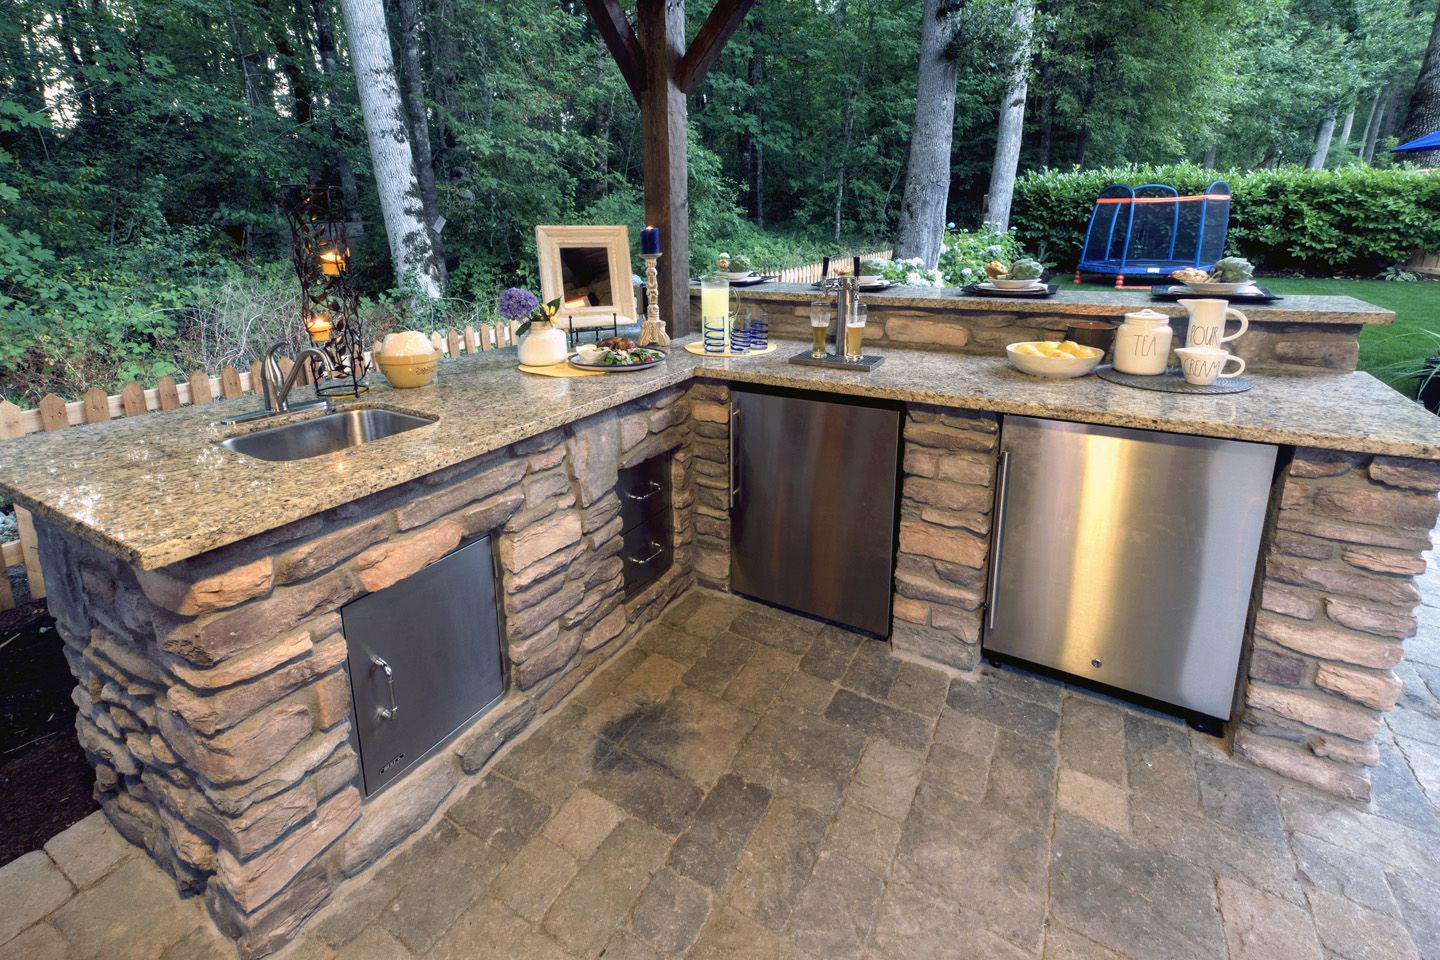 patio ideas paradise restored landscaping outdoor kitchen best countertops outdoor kitchen on outdoor kitchen gazebo ideas id=73537